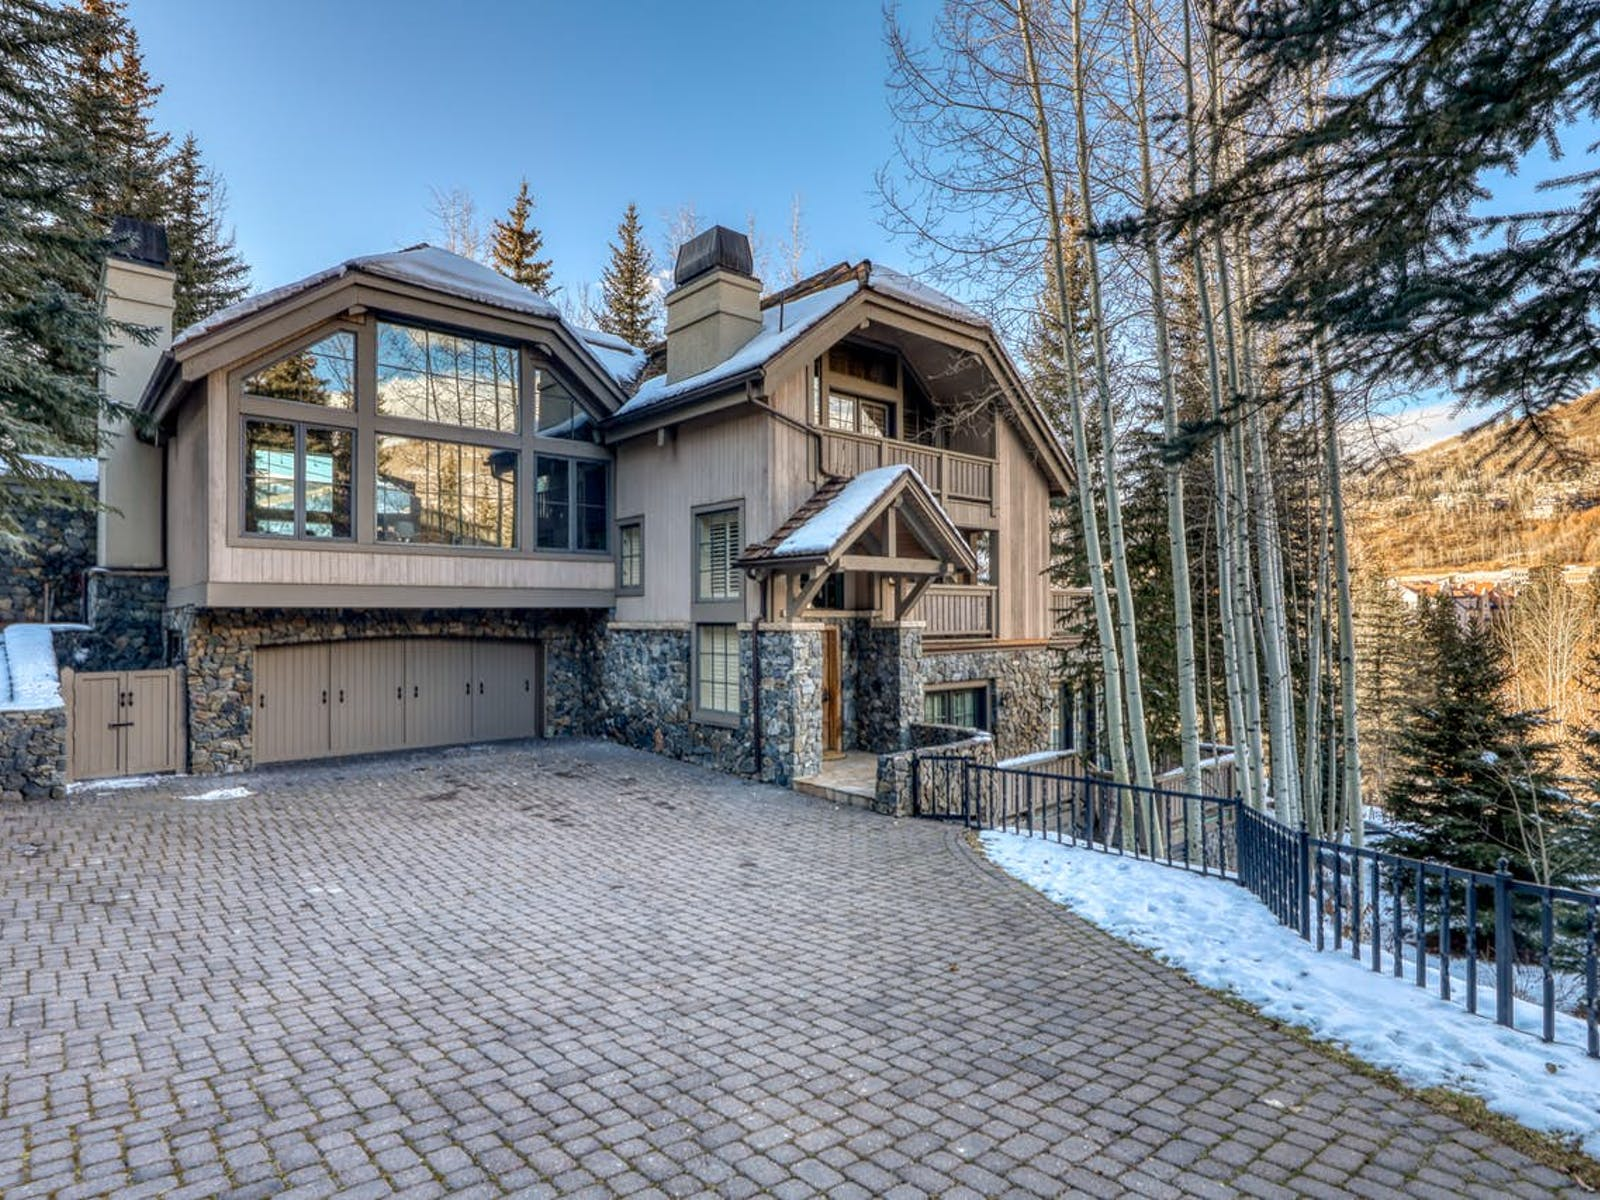 Large Vail, CO vacation home with brick driveway